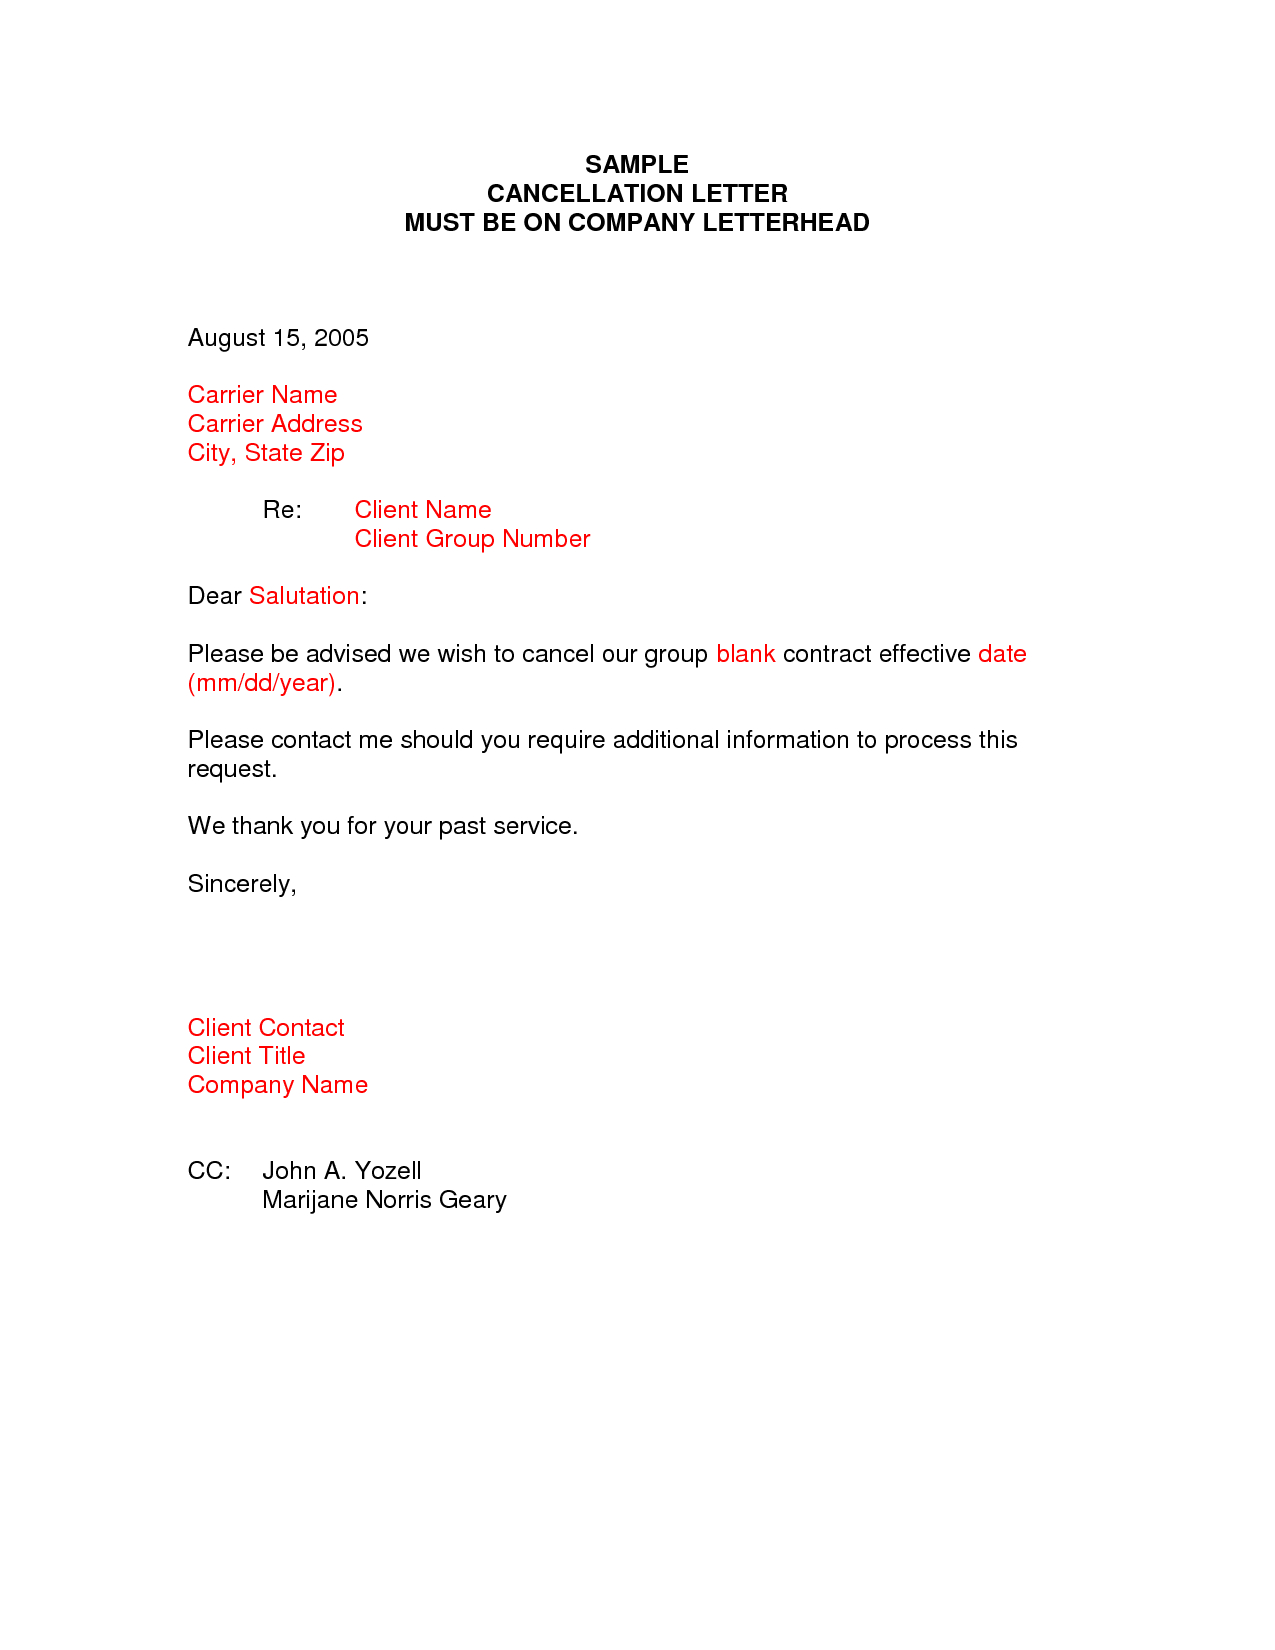 Insurance Policy Cancellation Letter Template - Sample Termination Letter format Business Case Examples Free Cover